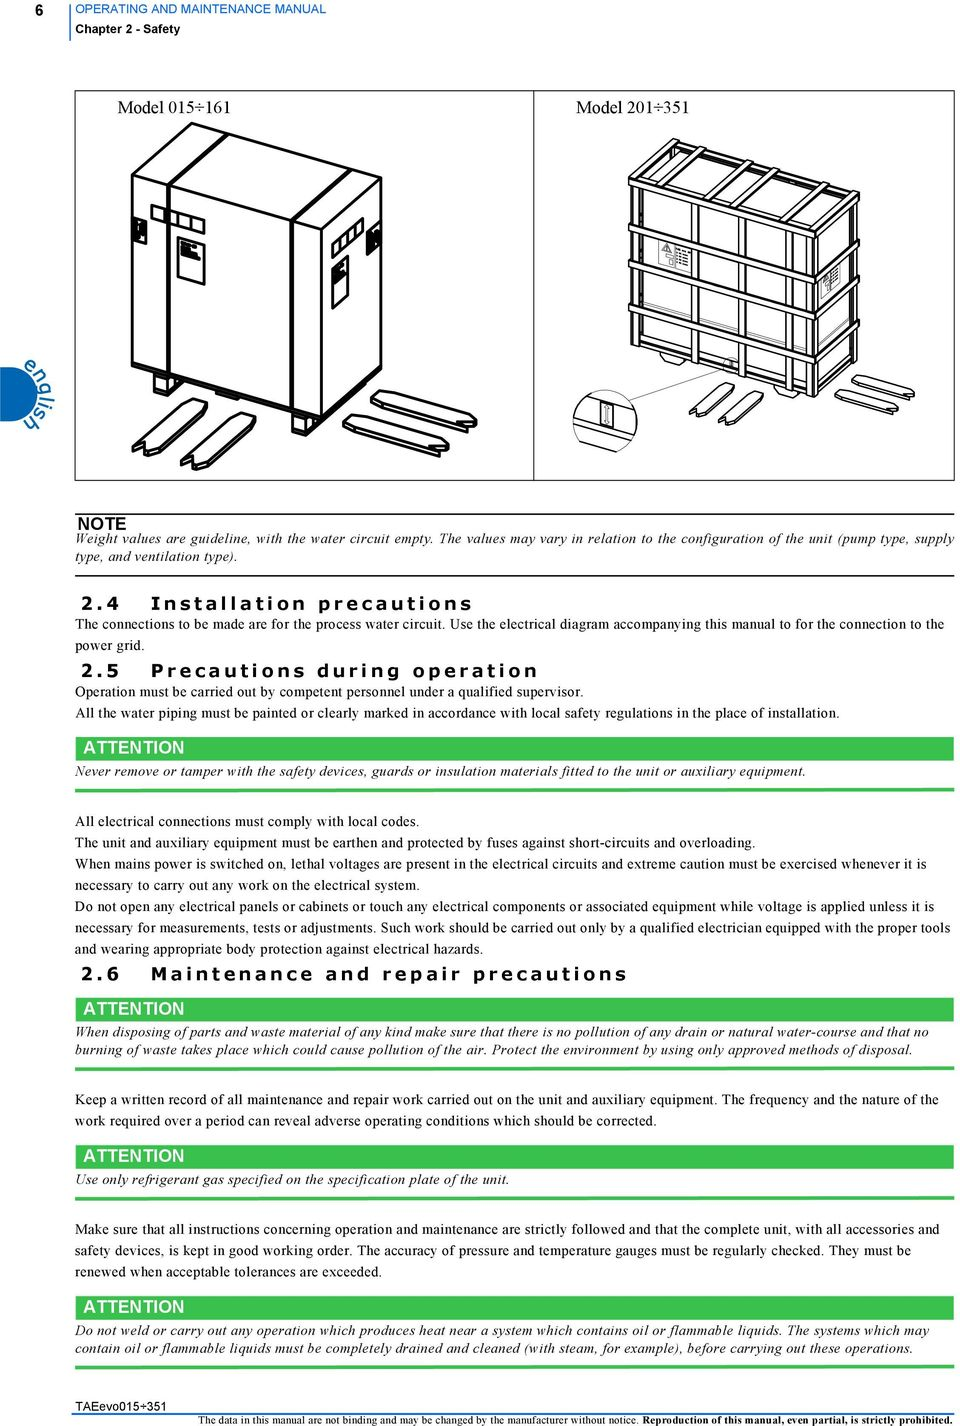 Water Chillers Taeevo Operating And Maintenance Manual Original Wiring In Addition Un Imac Washer Diagram Moreover Dryer 4 Installation Precautions The Connections To Be Made Are For Process Circuit Use